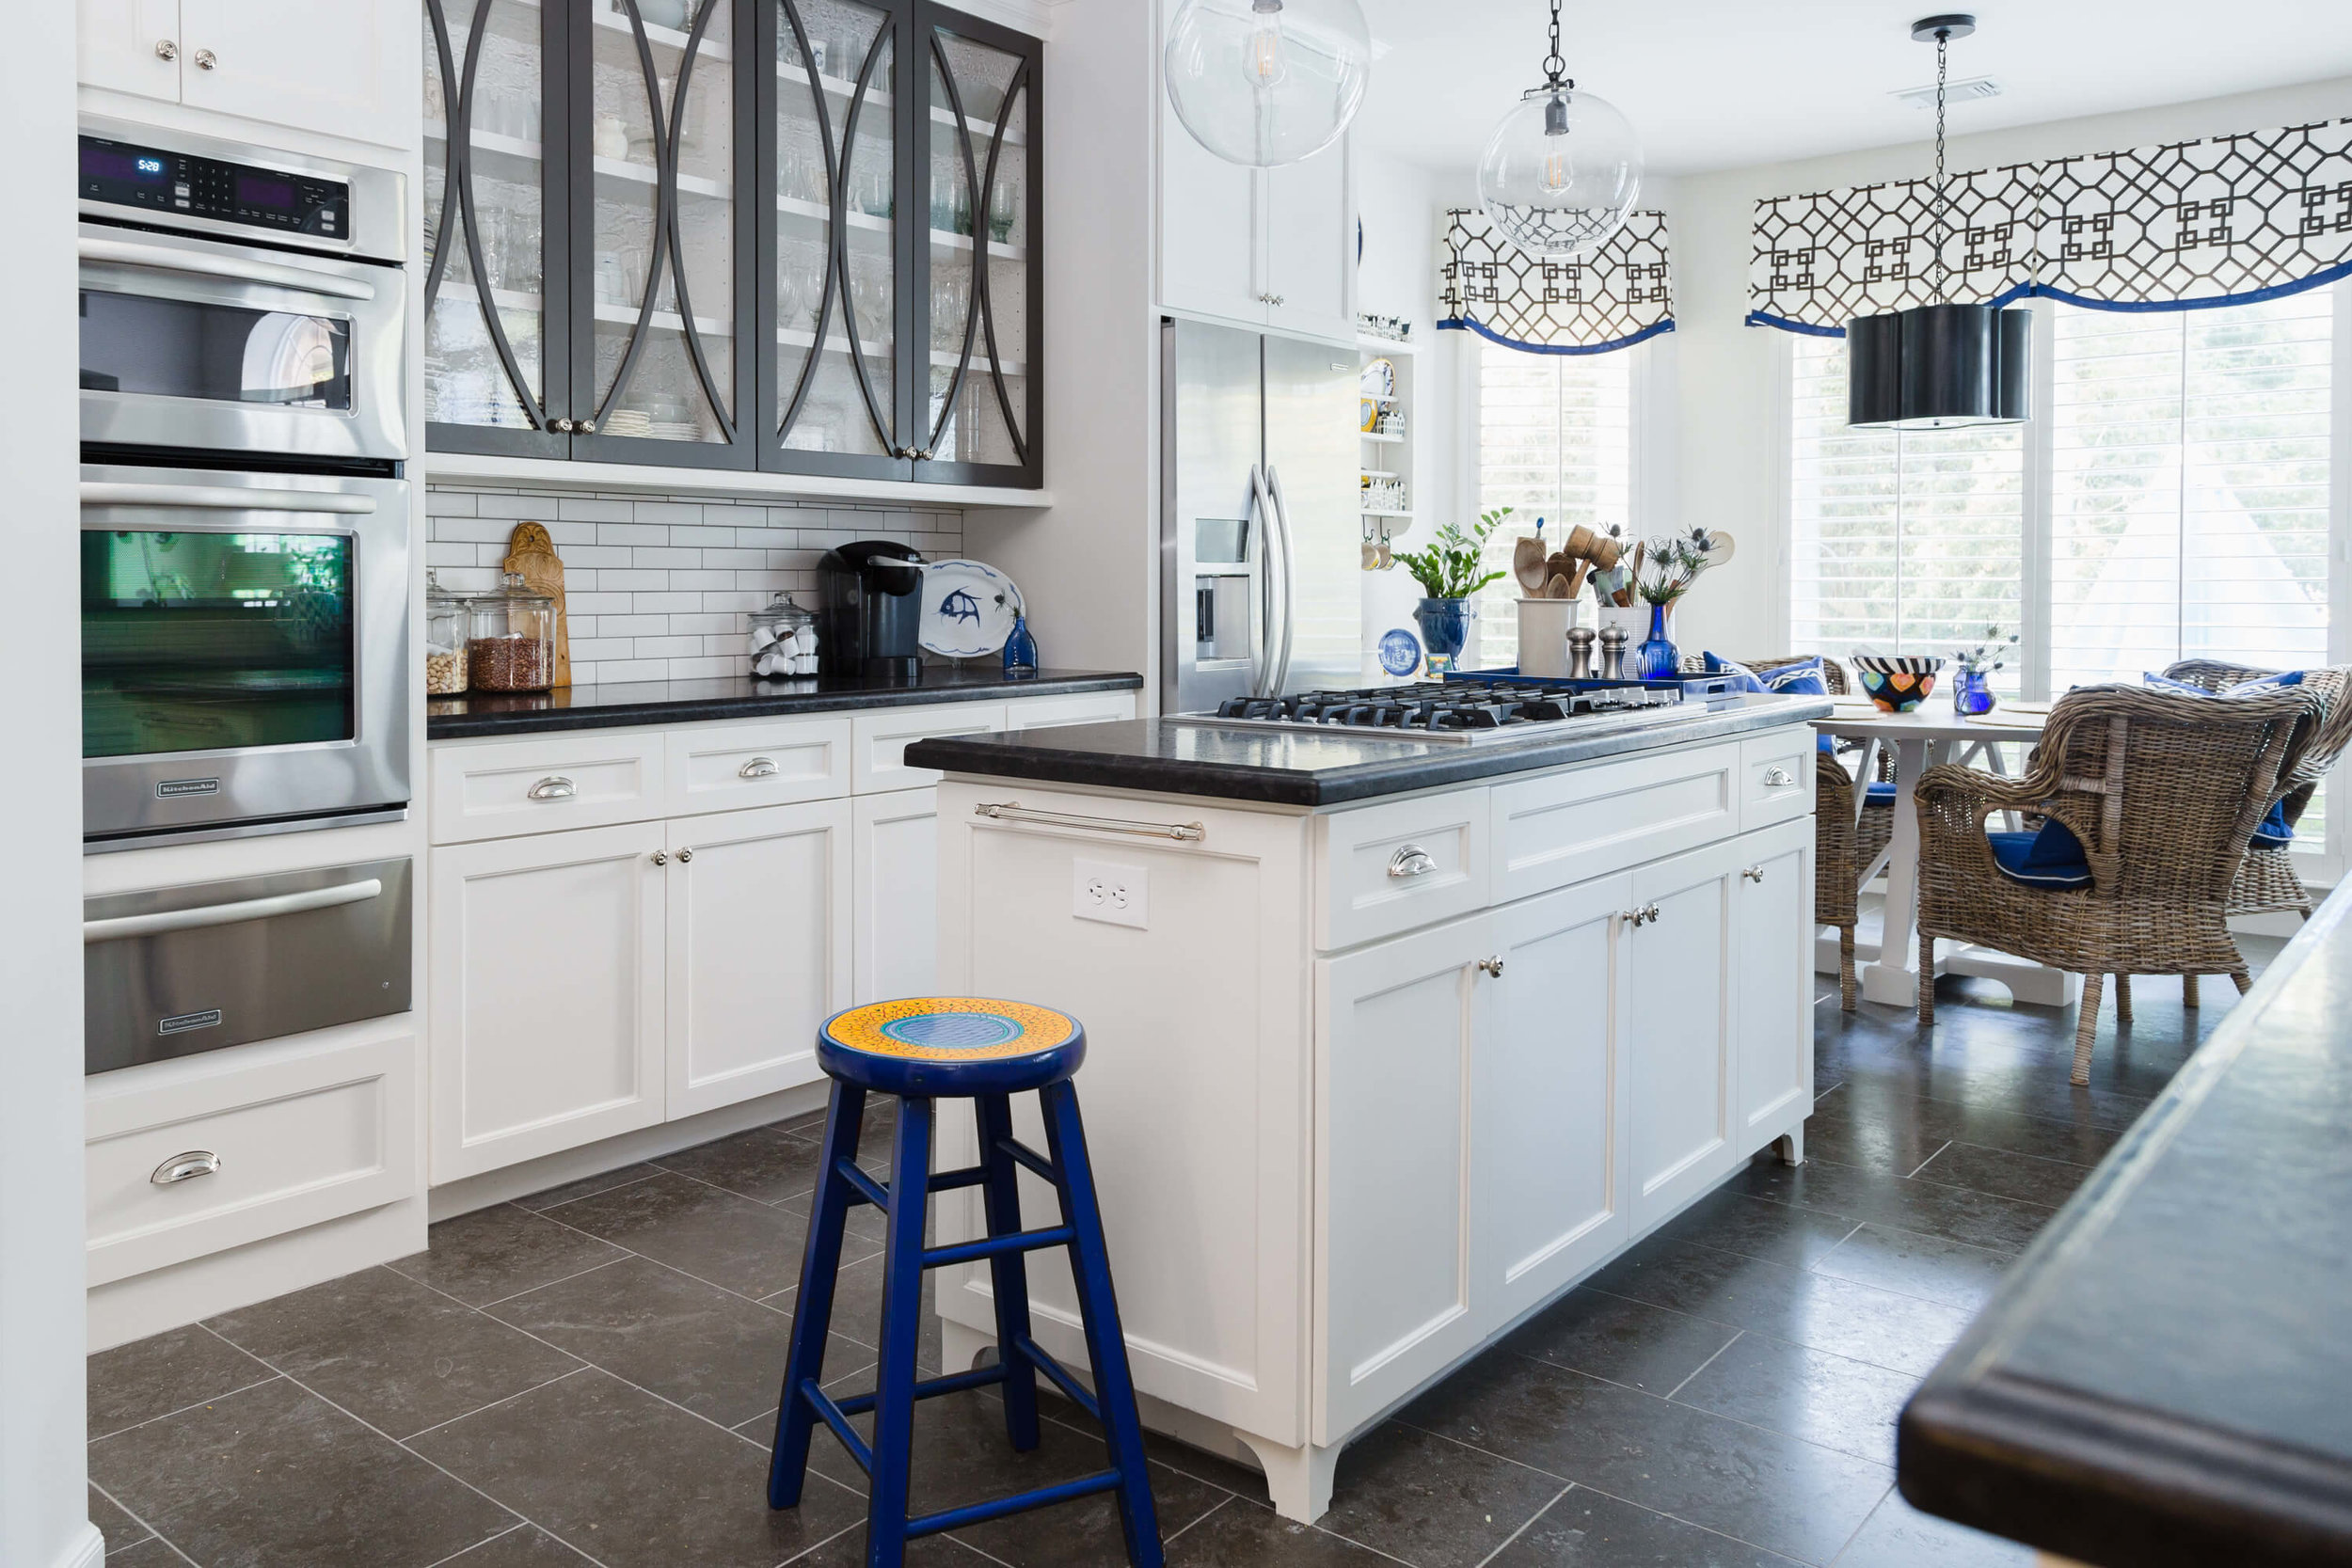 Before and After Kitchen Remodel - Carla Aston, Designer, Tori Aston, Photographer